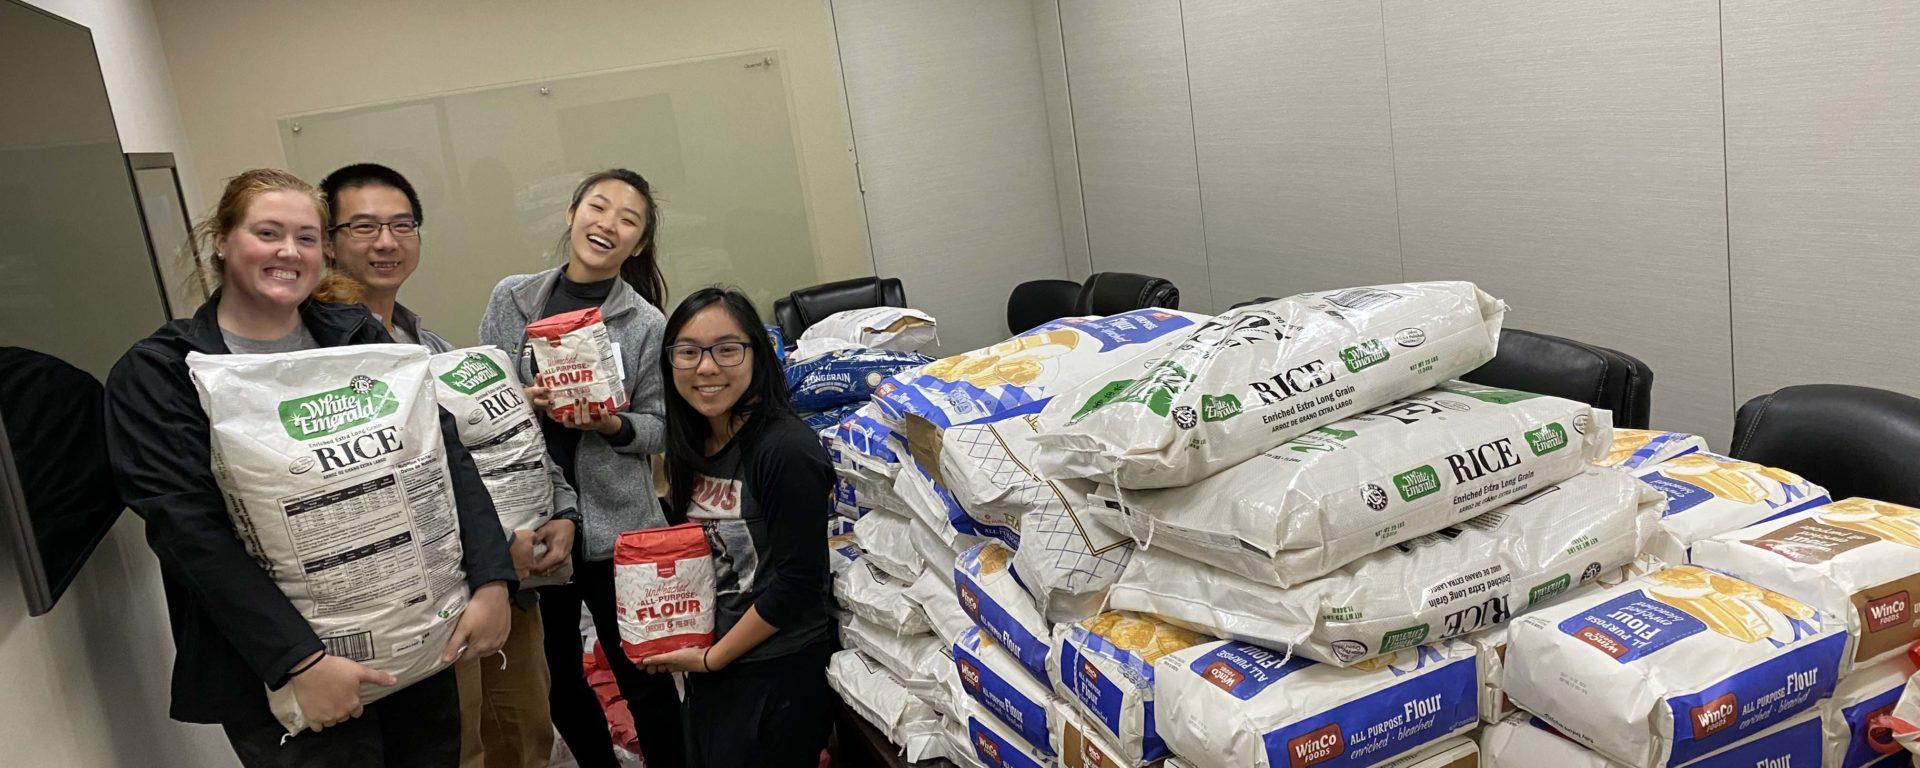 The Touro University Nevada community lived its mission of service to humanity thanks to two great fundraising initiatives that led to thousands of dollars and canned food donations in early December.